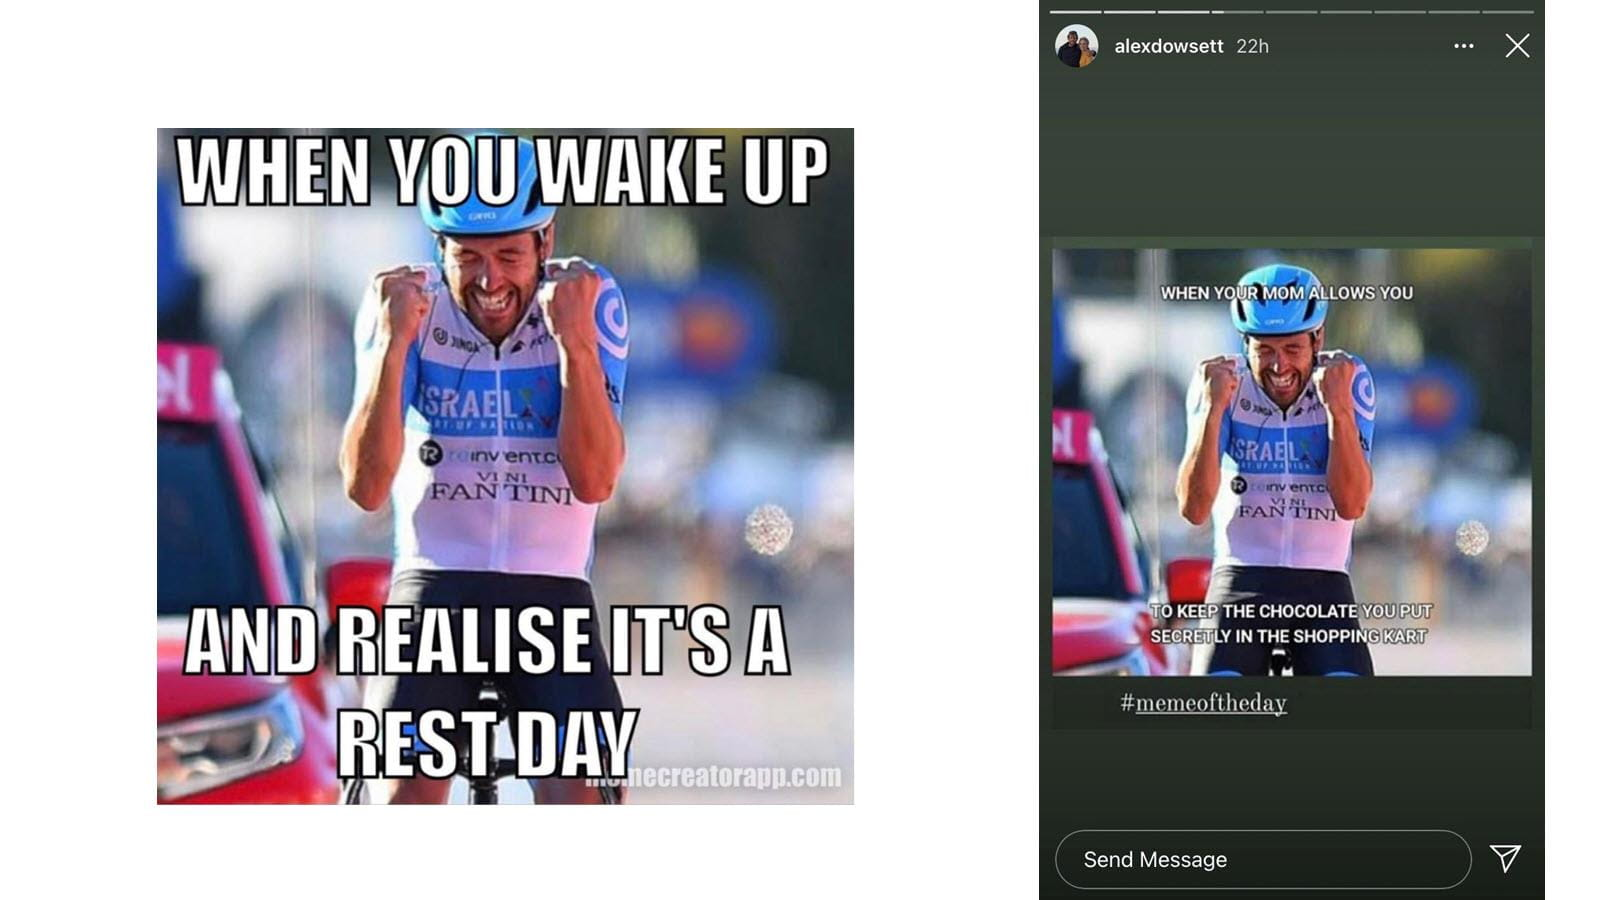 Two social media memes featuring Alex Dowsett's cycling victory